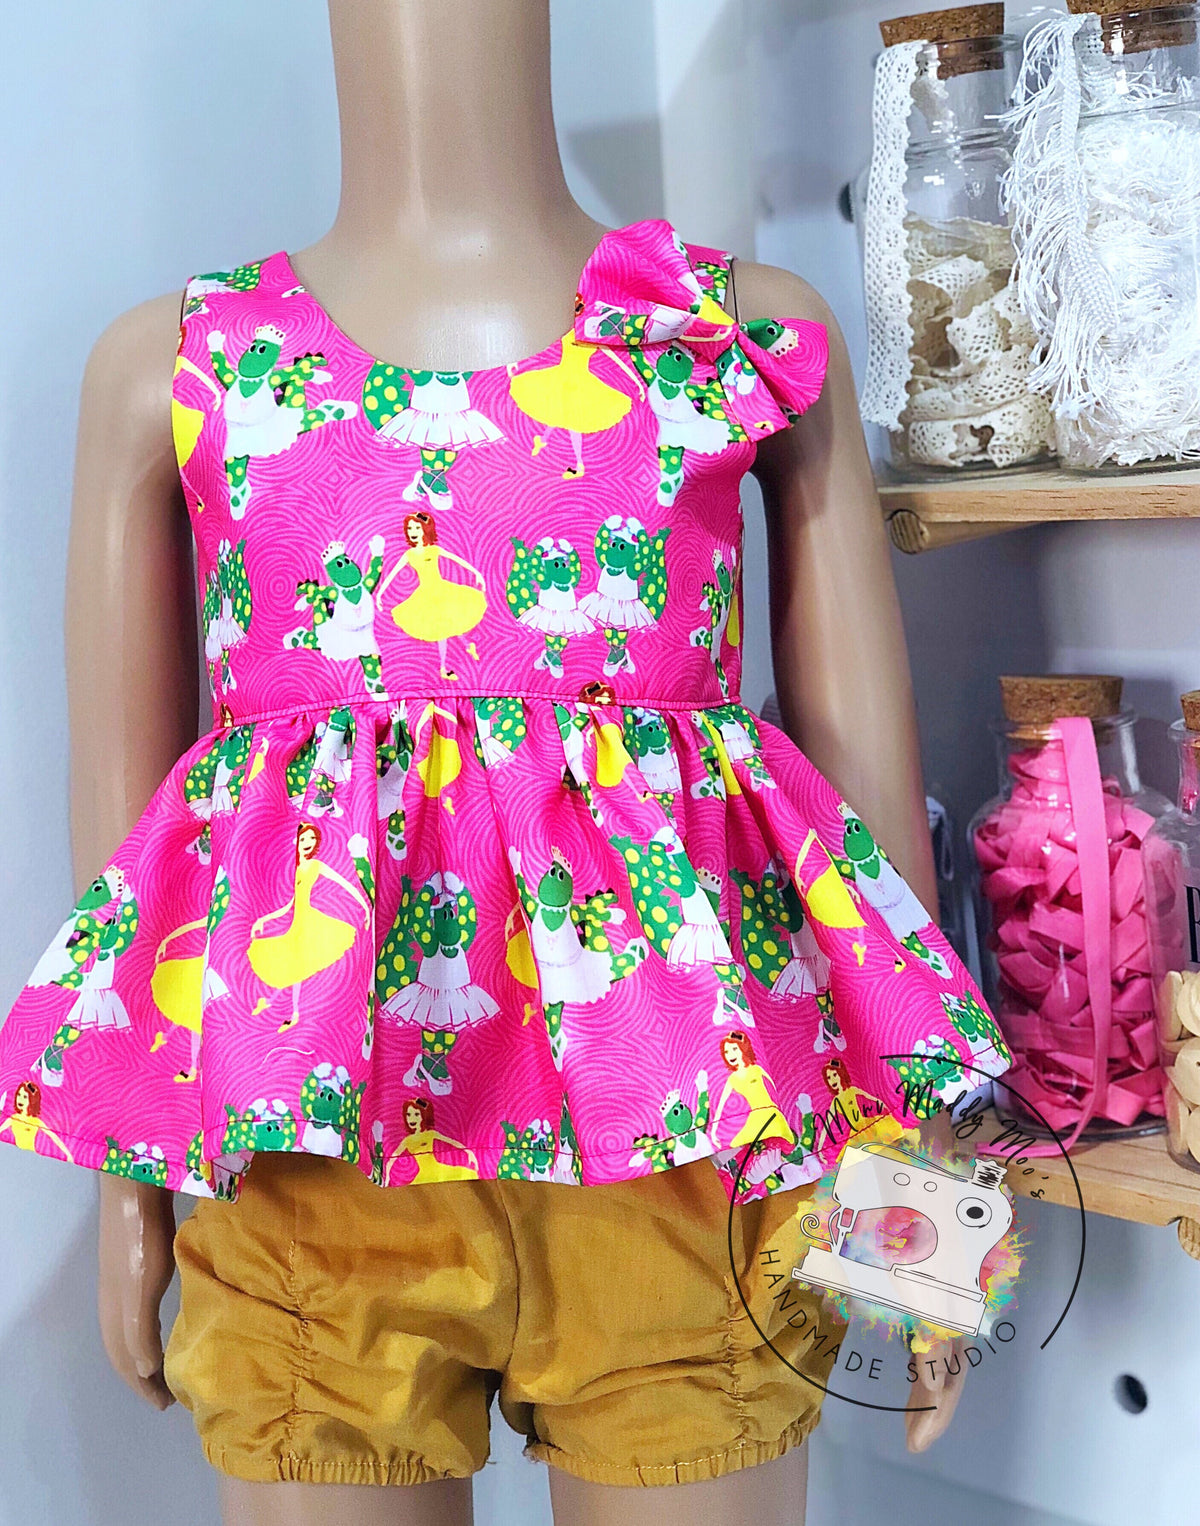 Emma & Dorothy Tea Party Dress or Top - Mini Maddy Moo's